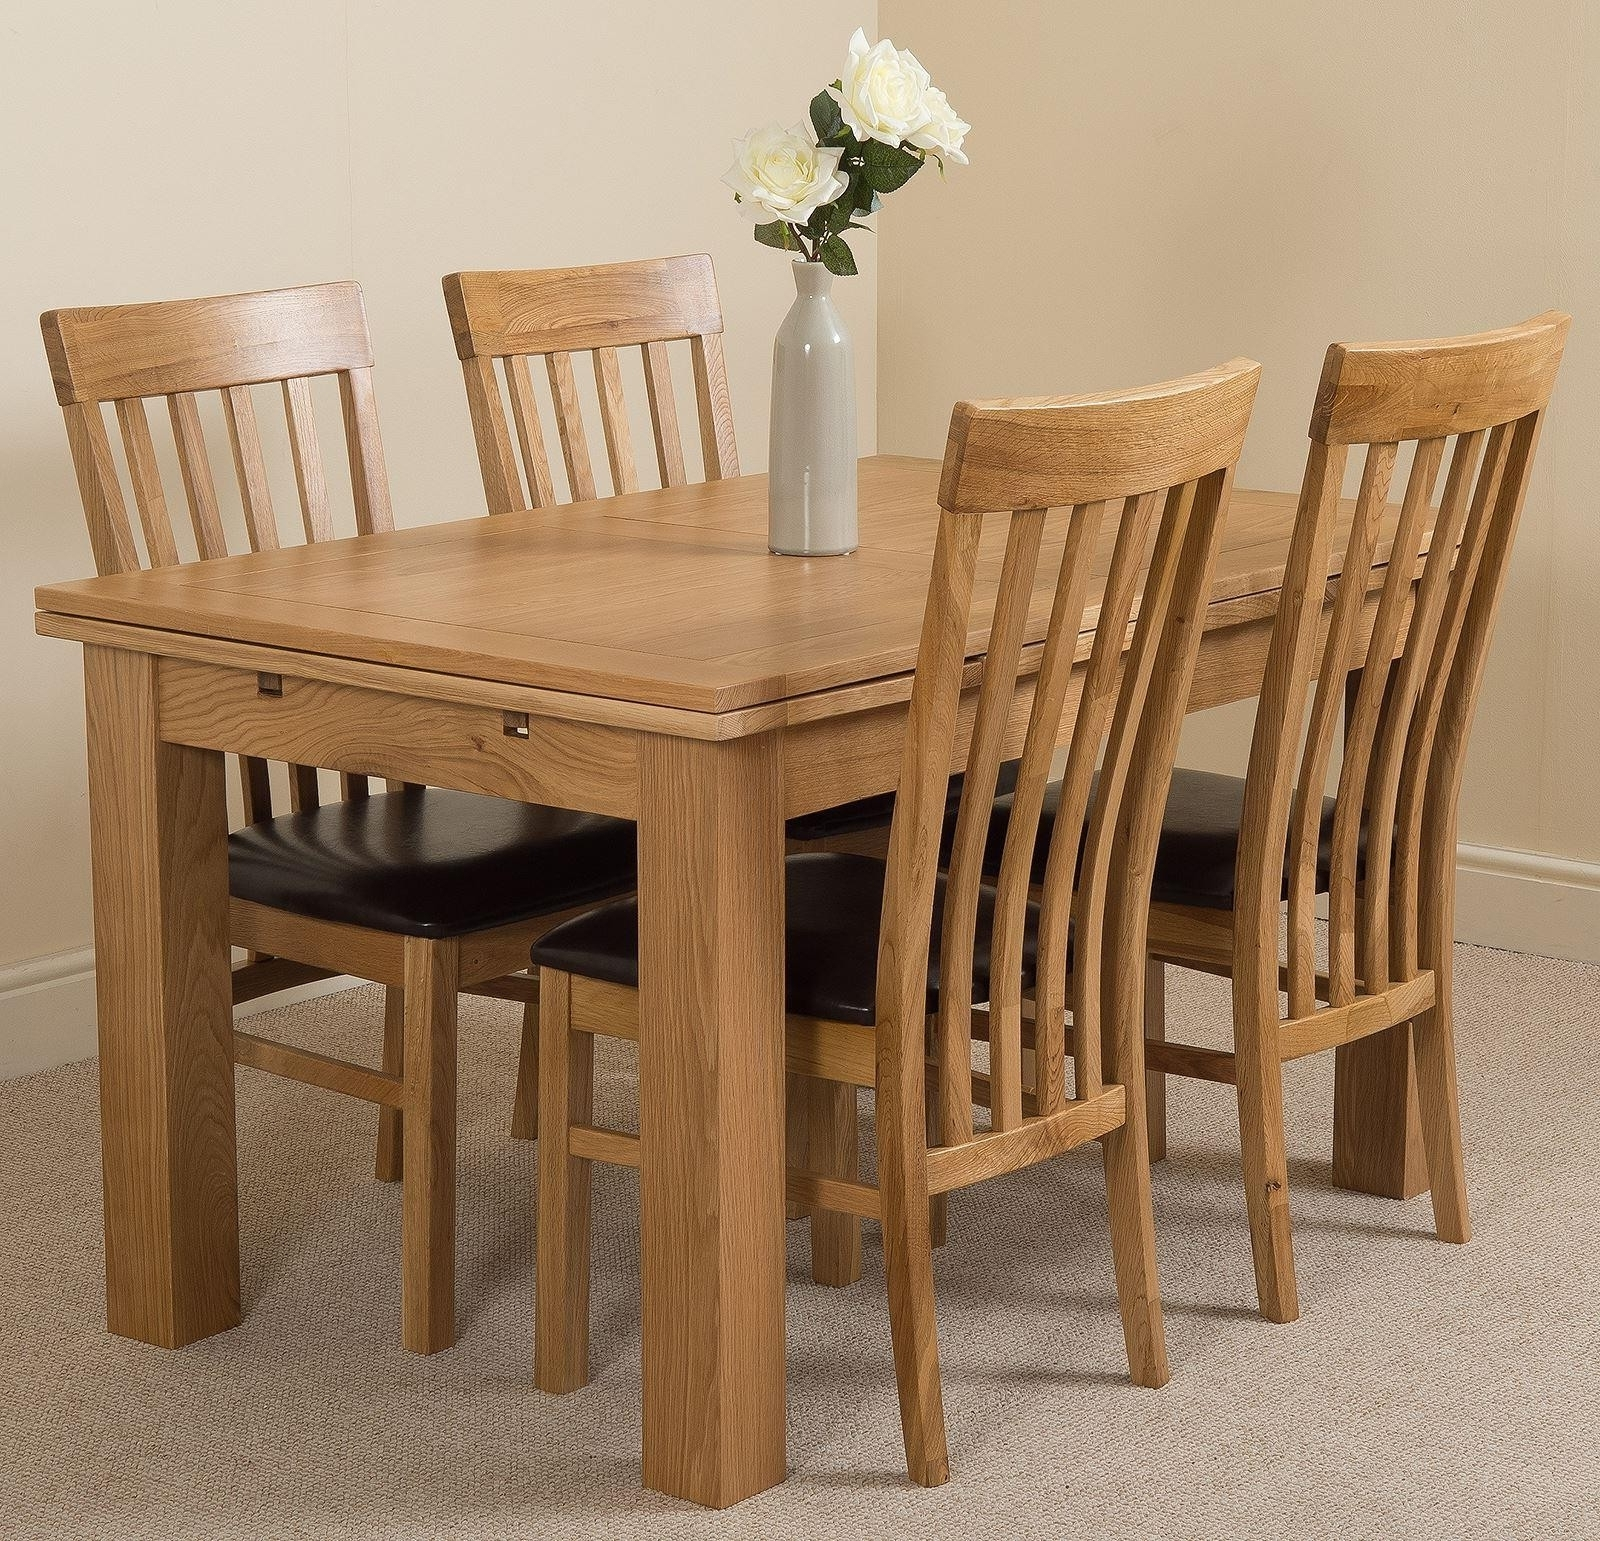 Richmond Oak Small Dining Set 4 Harvard Chairs Throughout Popular Light Oak Dining Tables And Chairs (View 21 of 25)